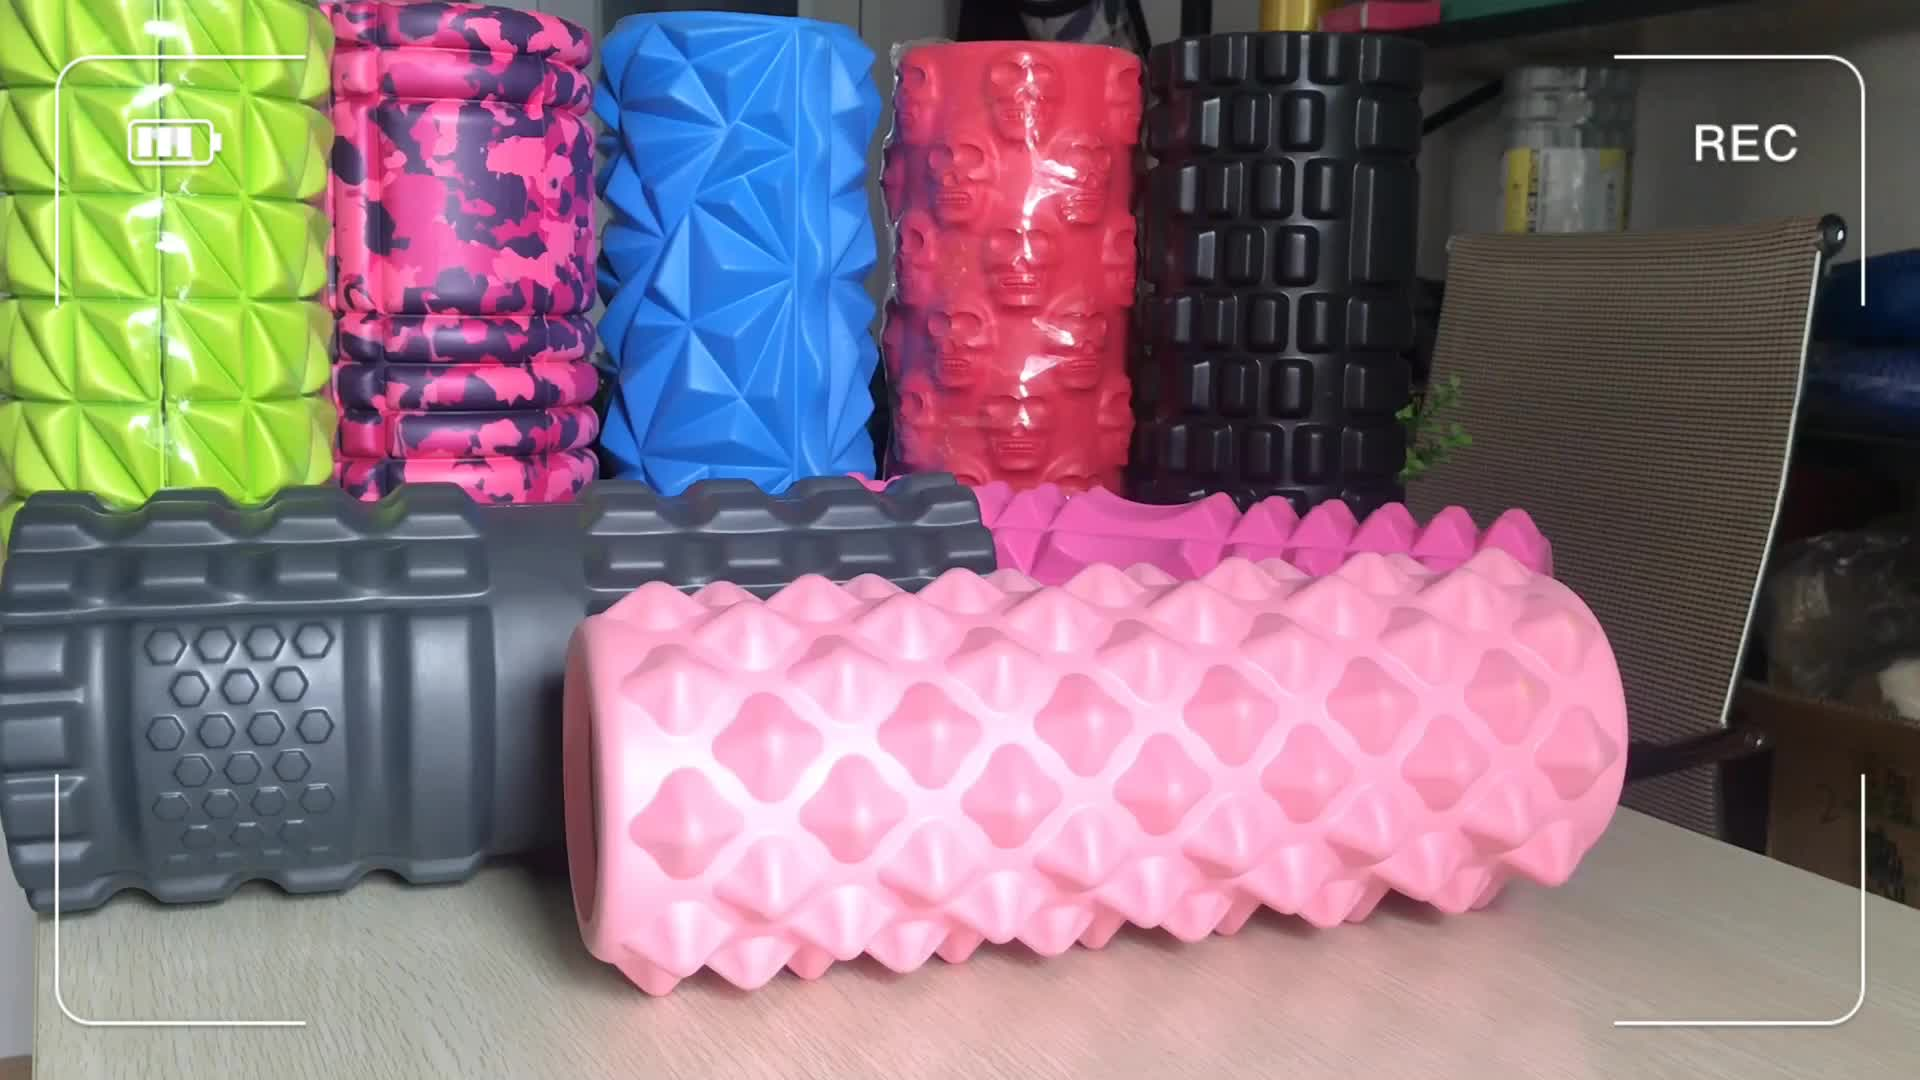 Custom color EVA Yoga Massage spiky pink Foam Roller for Myofascial Release physiotherapy rehab exercise